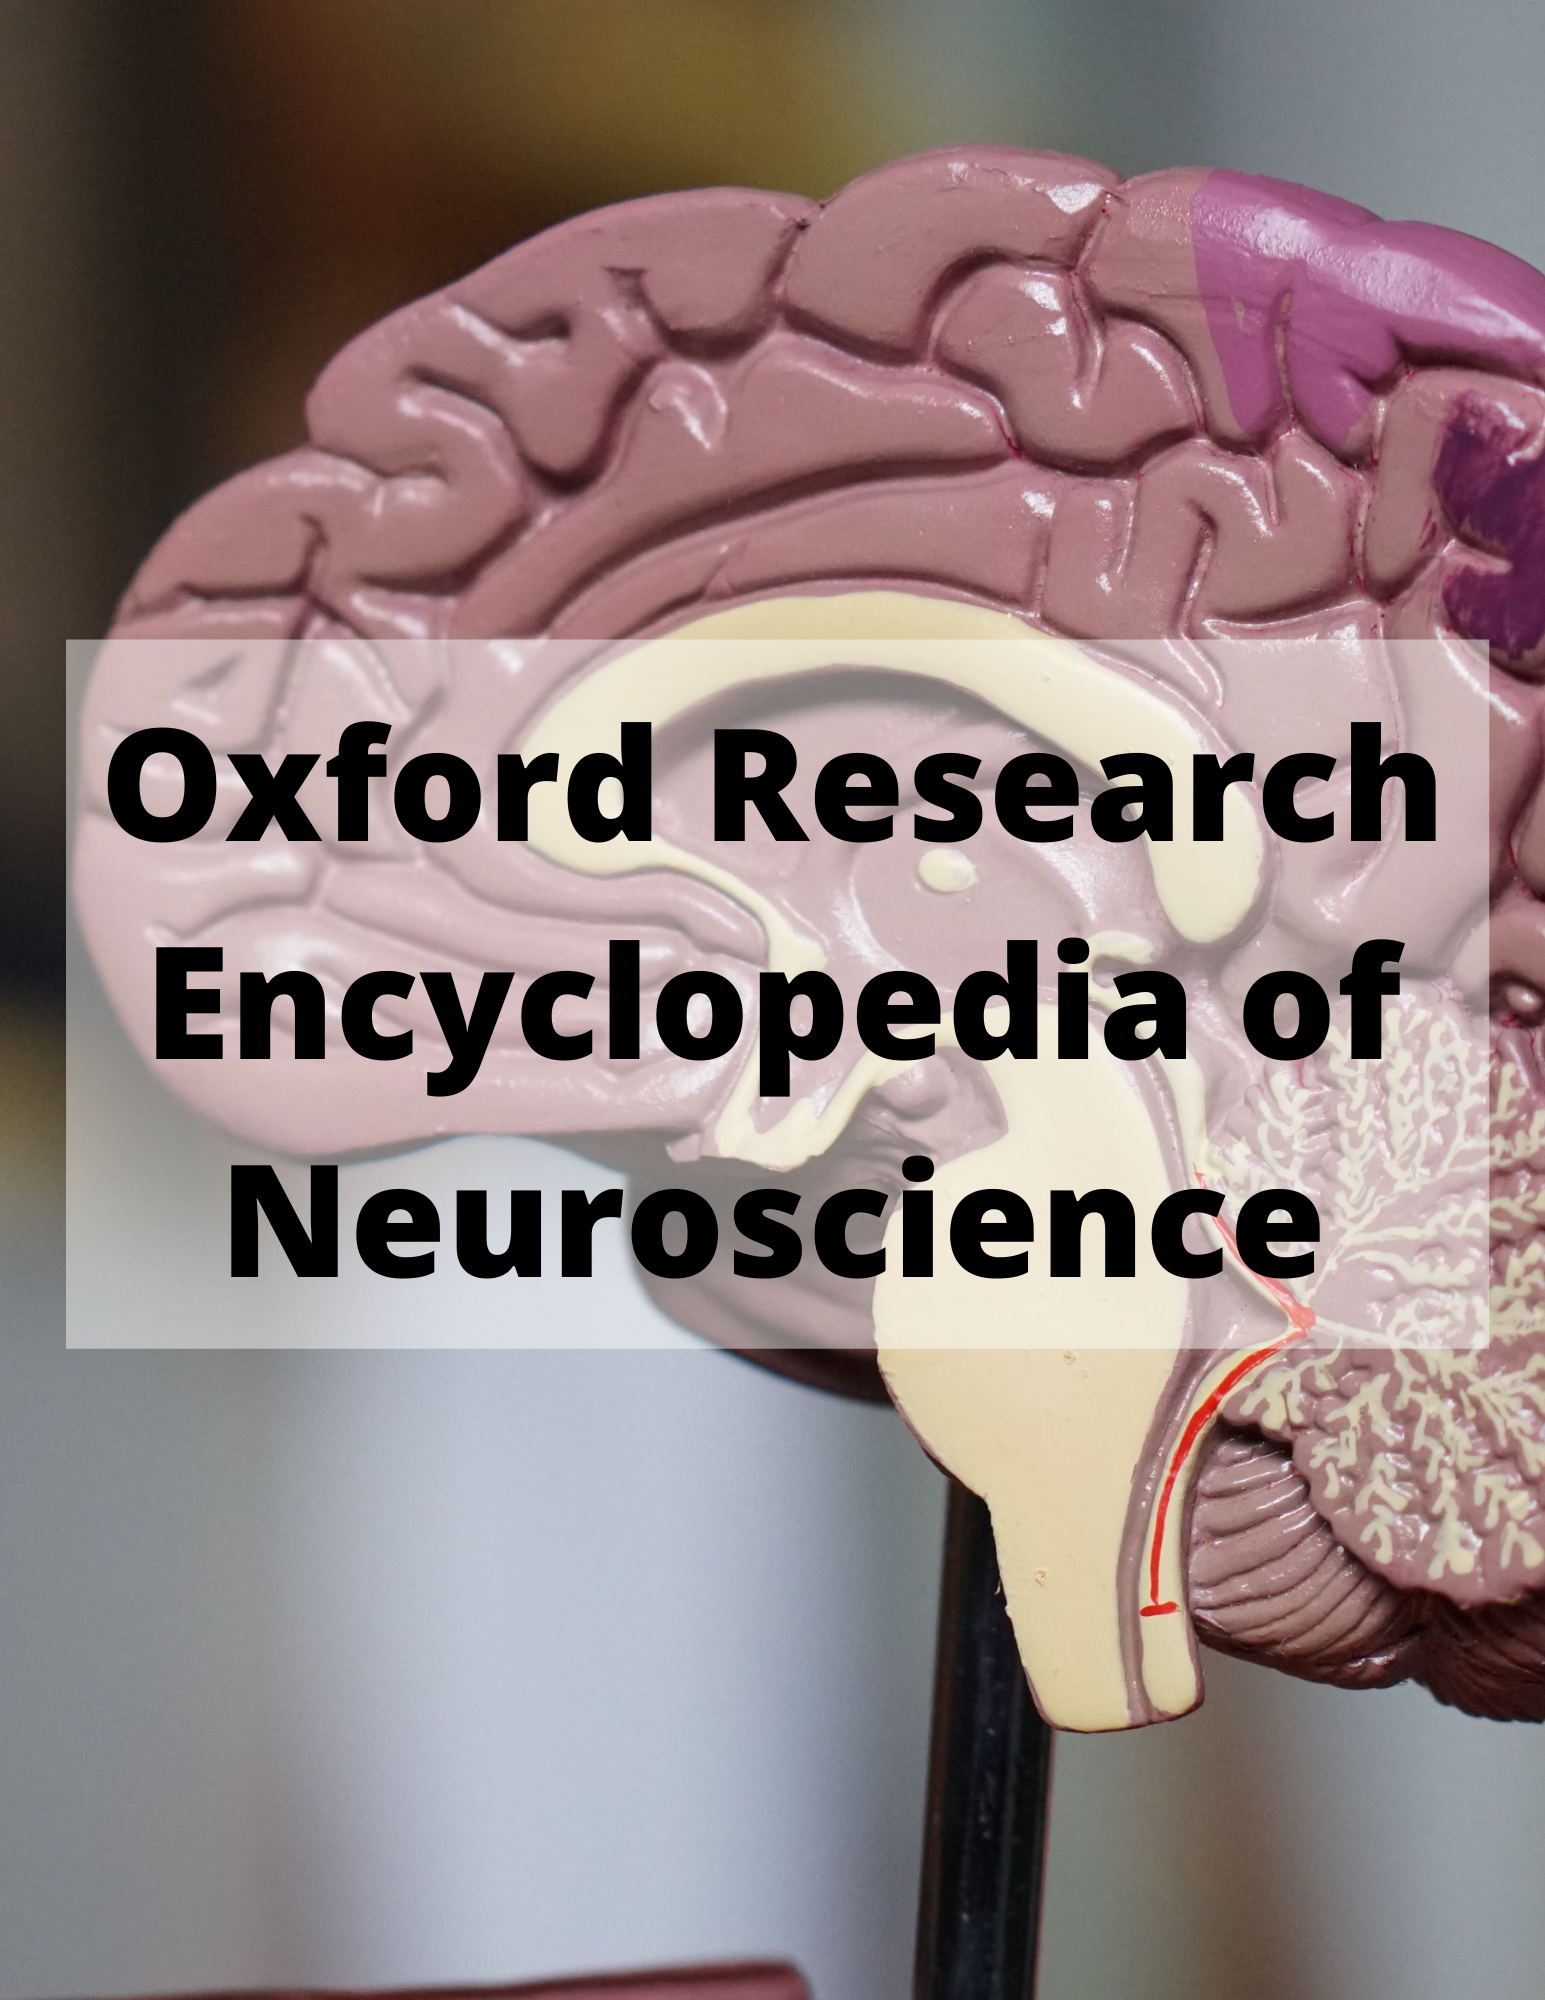 Oxford Research Encyclopedia of Neuroscience